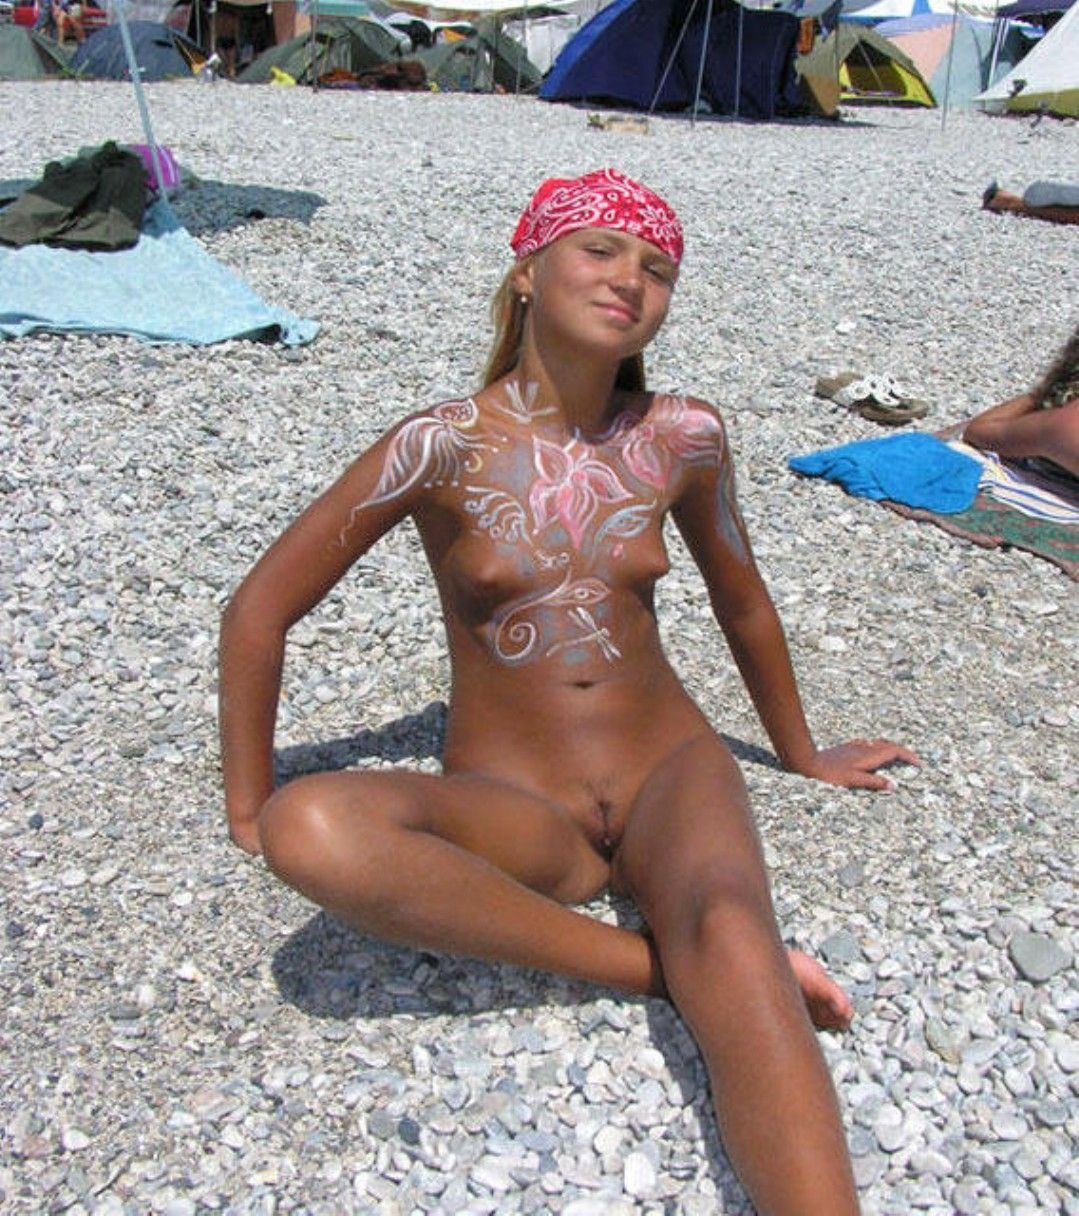 Apologise, fucked nude girl body paint apologise, but, opinion